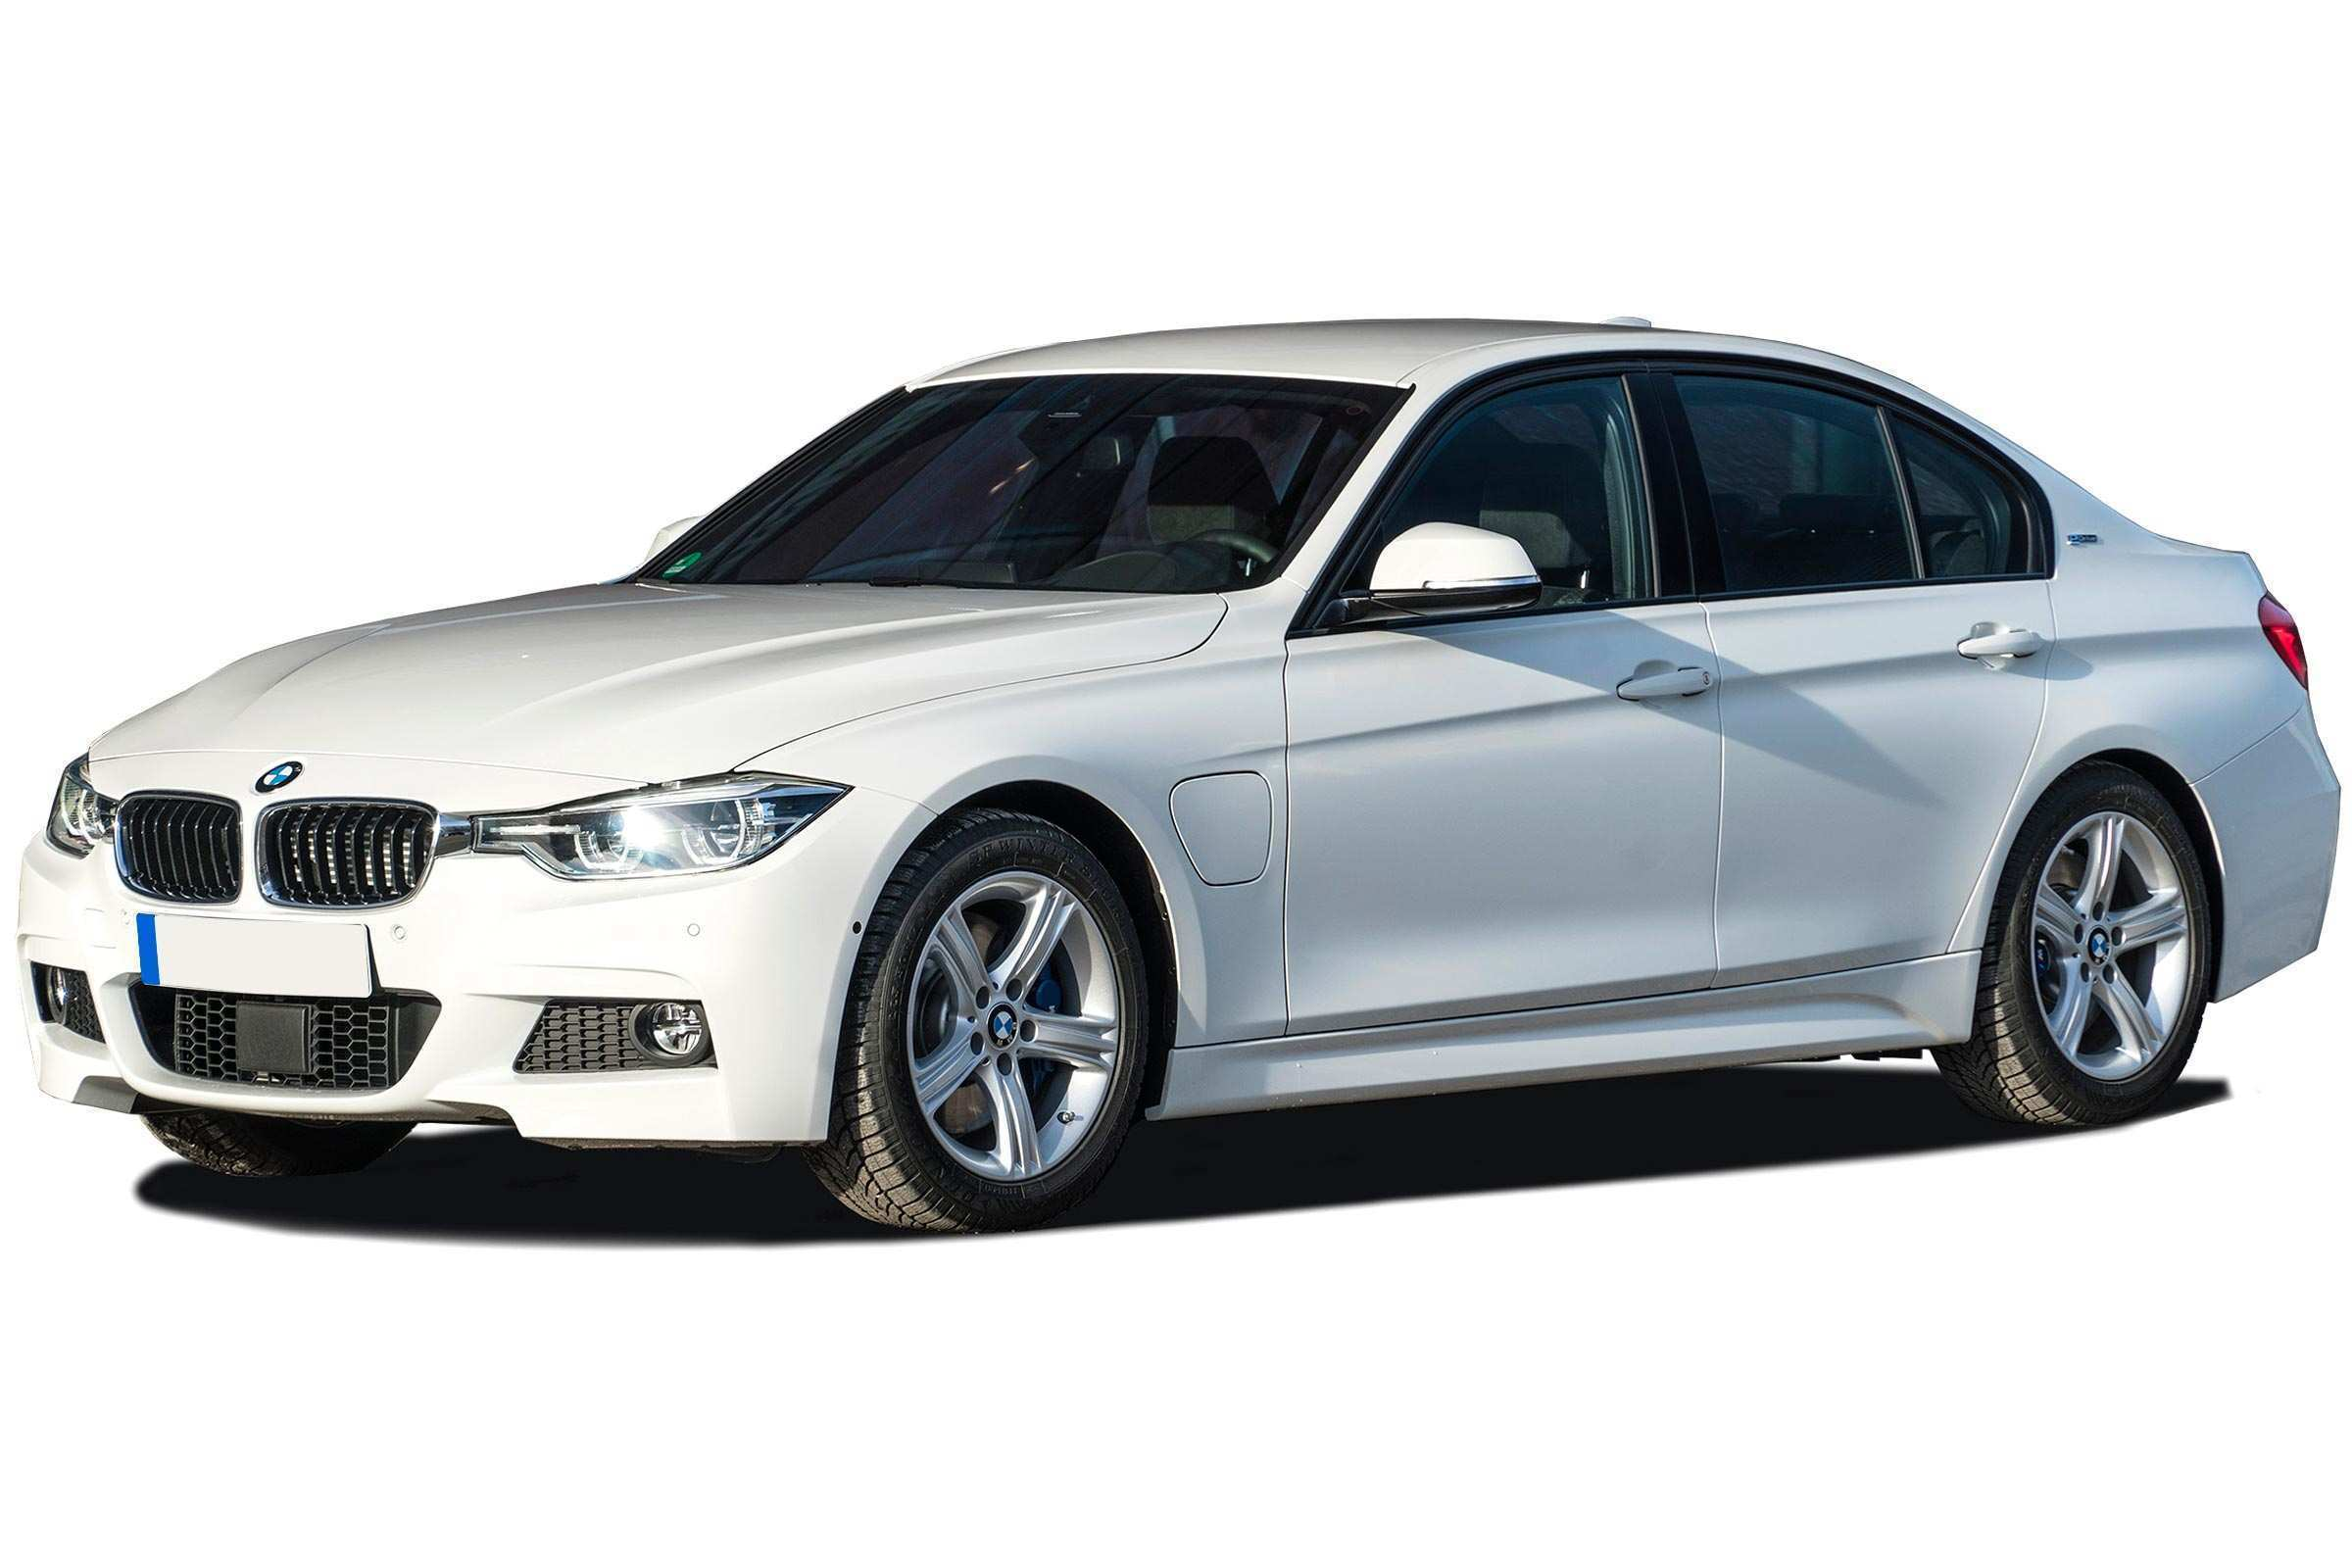 41 New 2020 BMW 3 Series Edrive Phev Price Design and Review